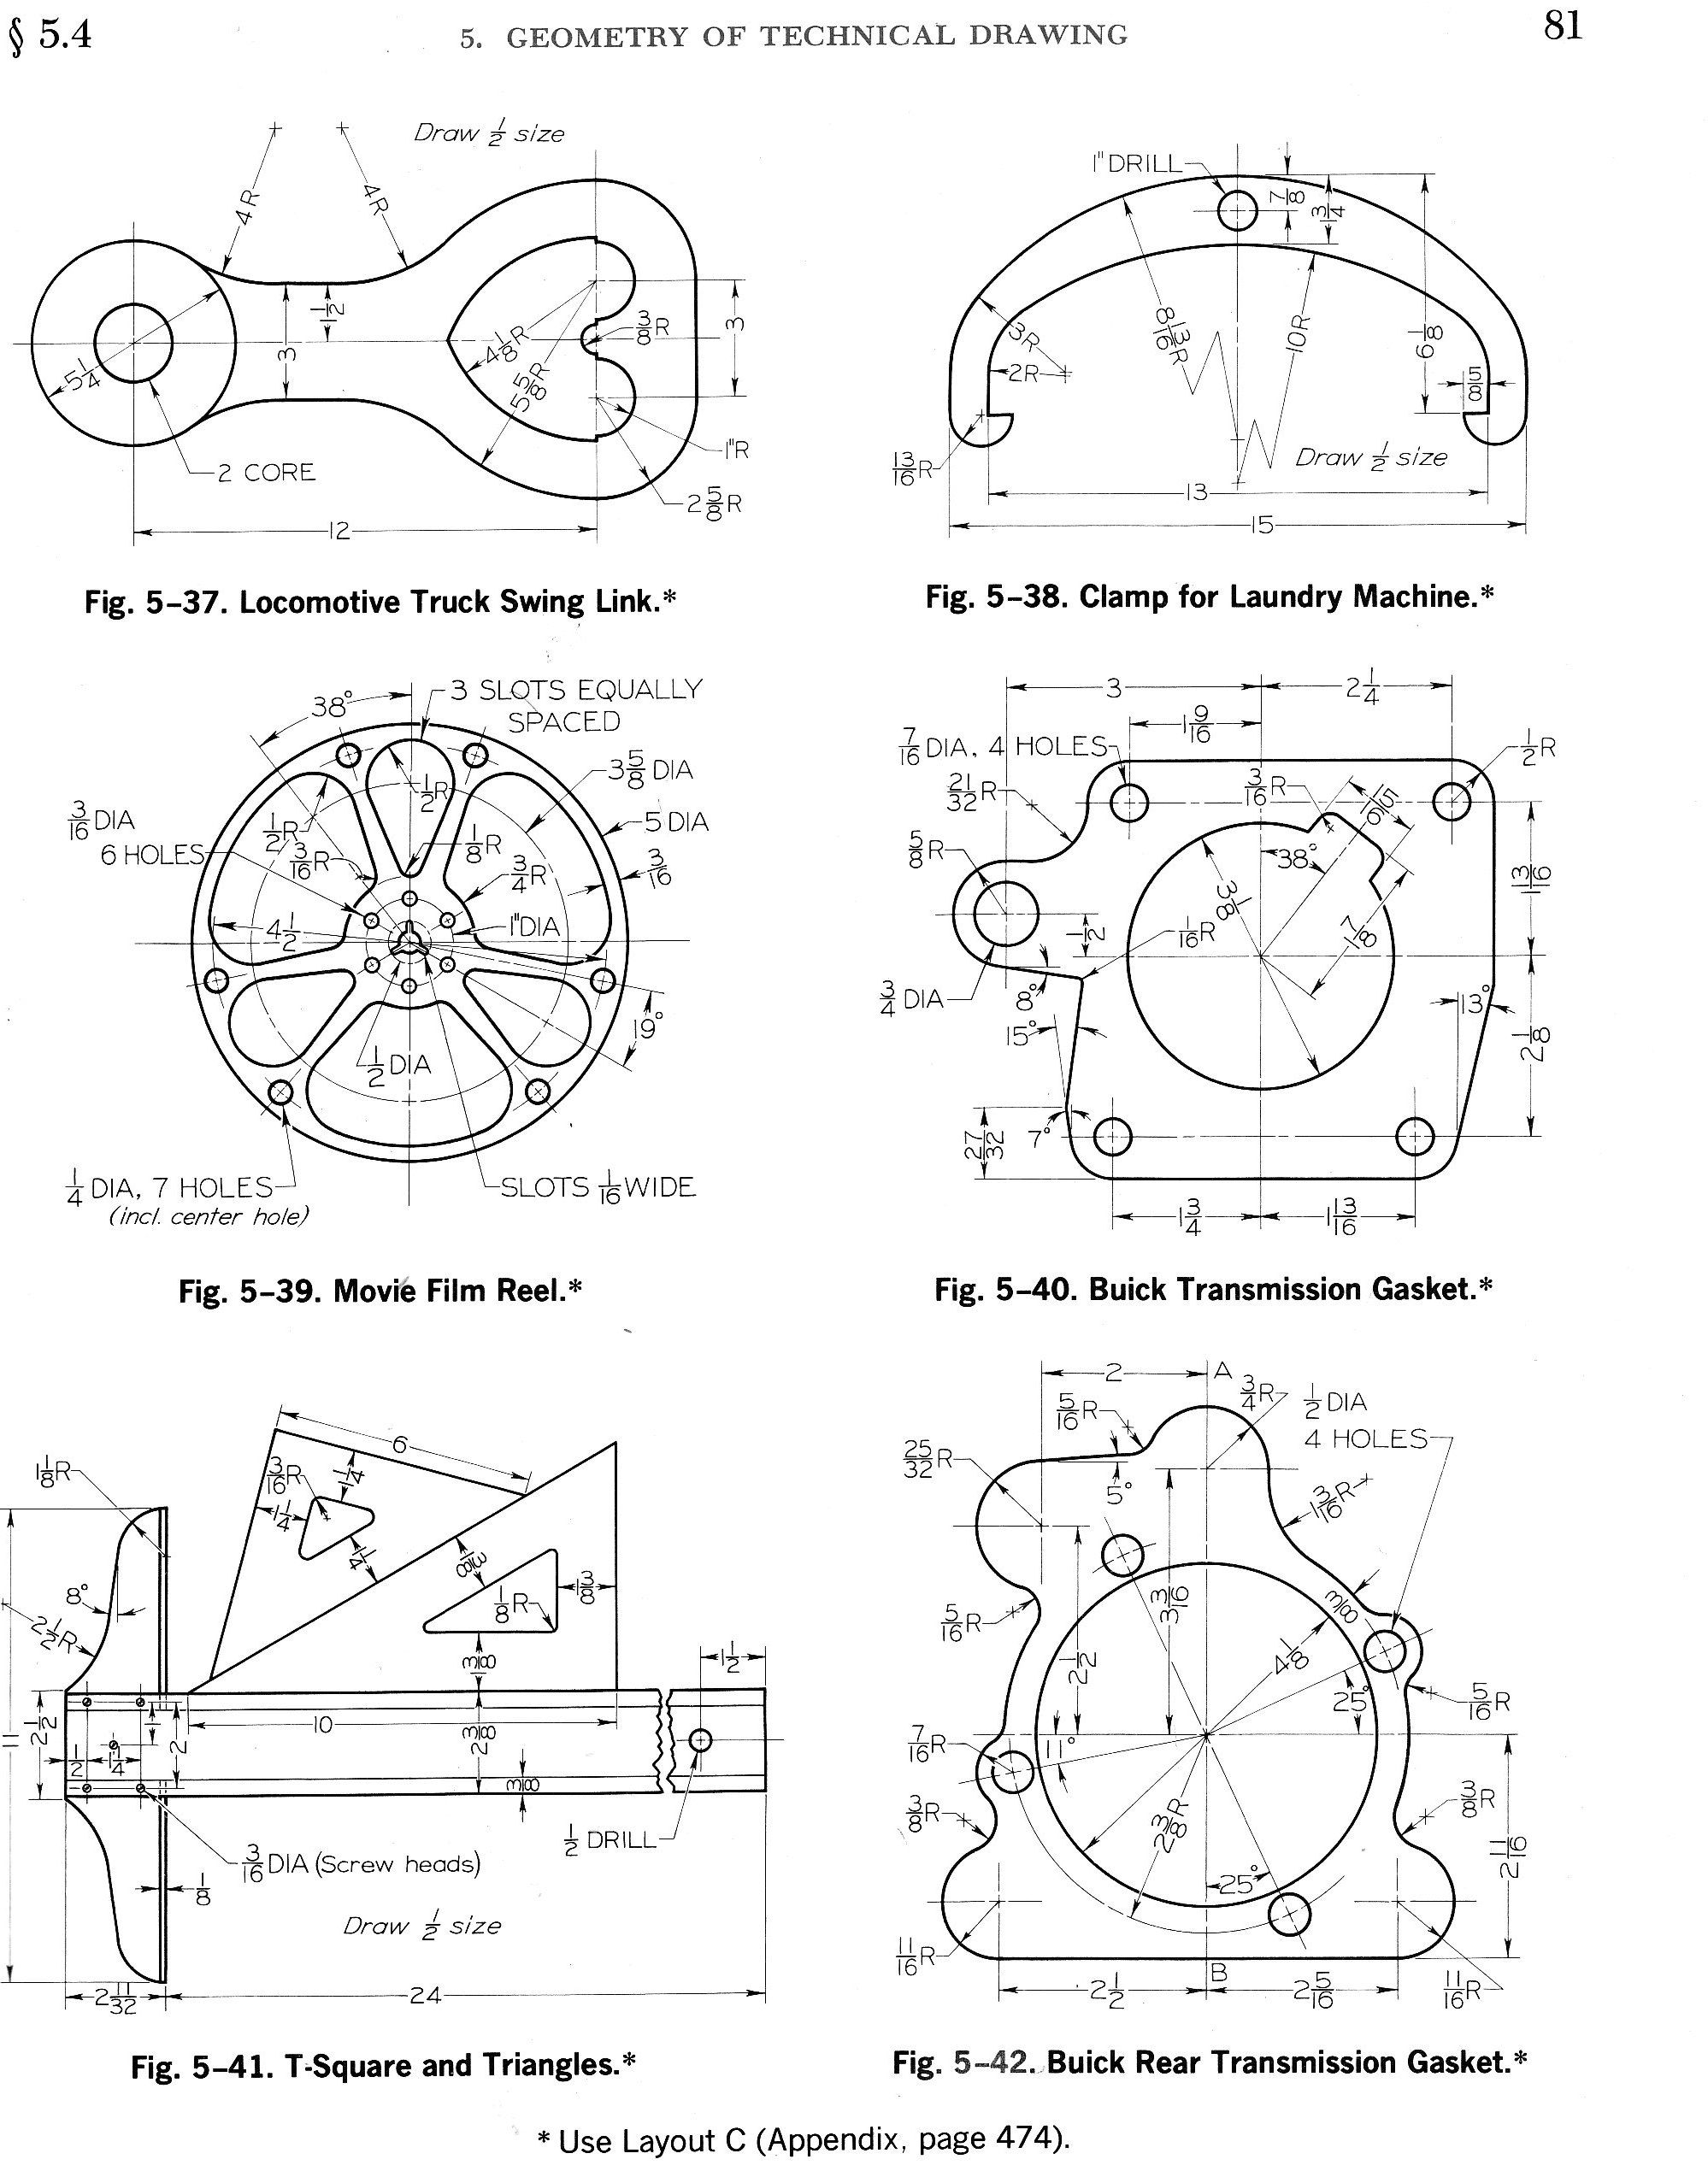 engineering drawing symbols and their meanings pdf at getdrawings com